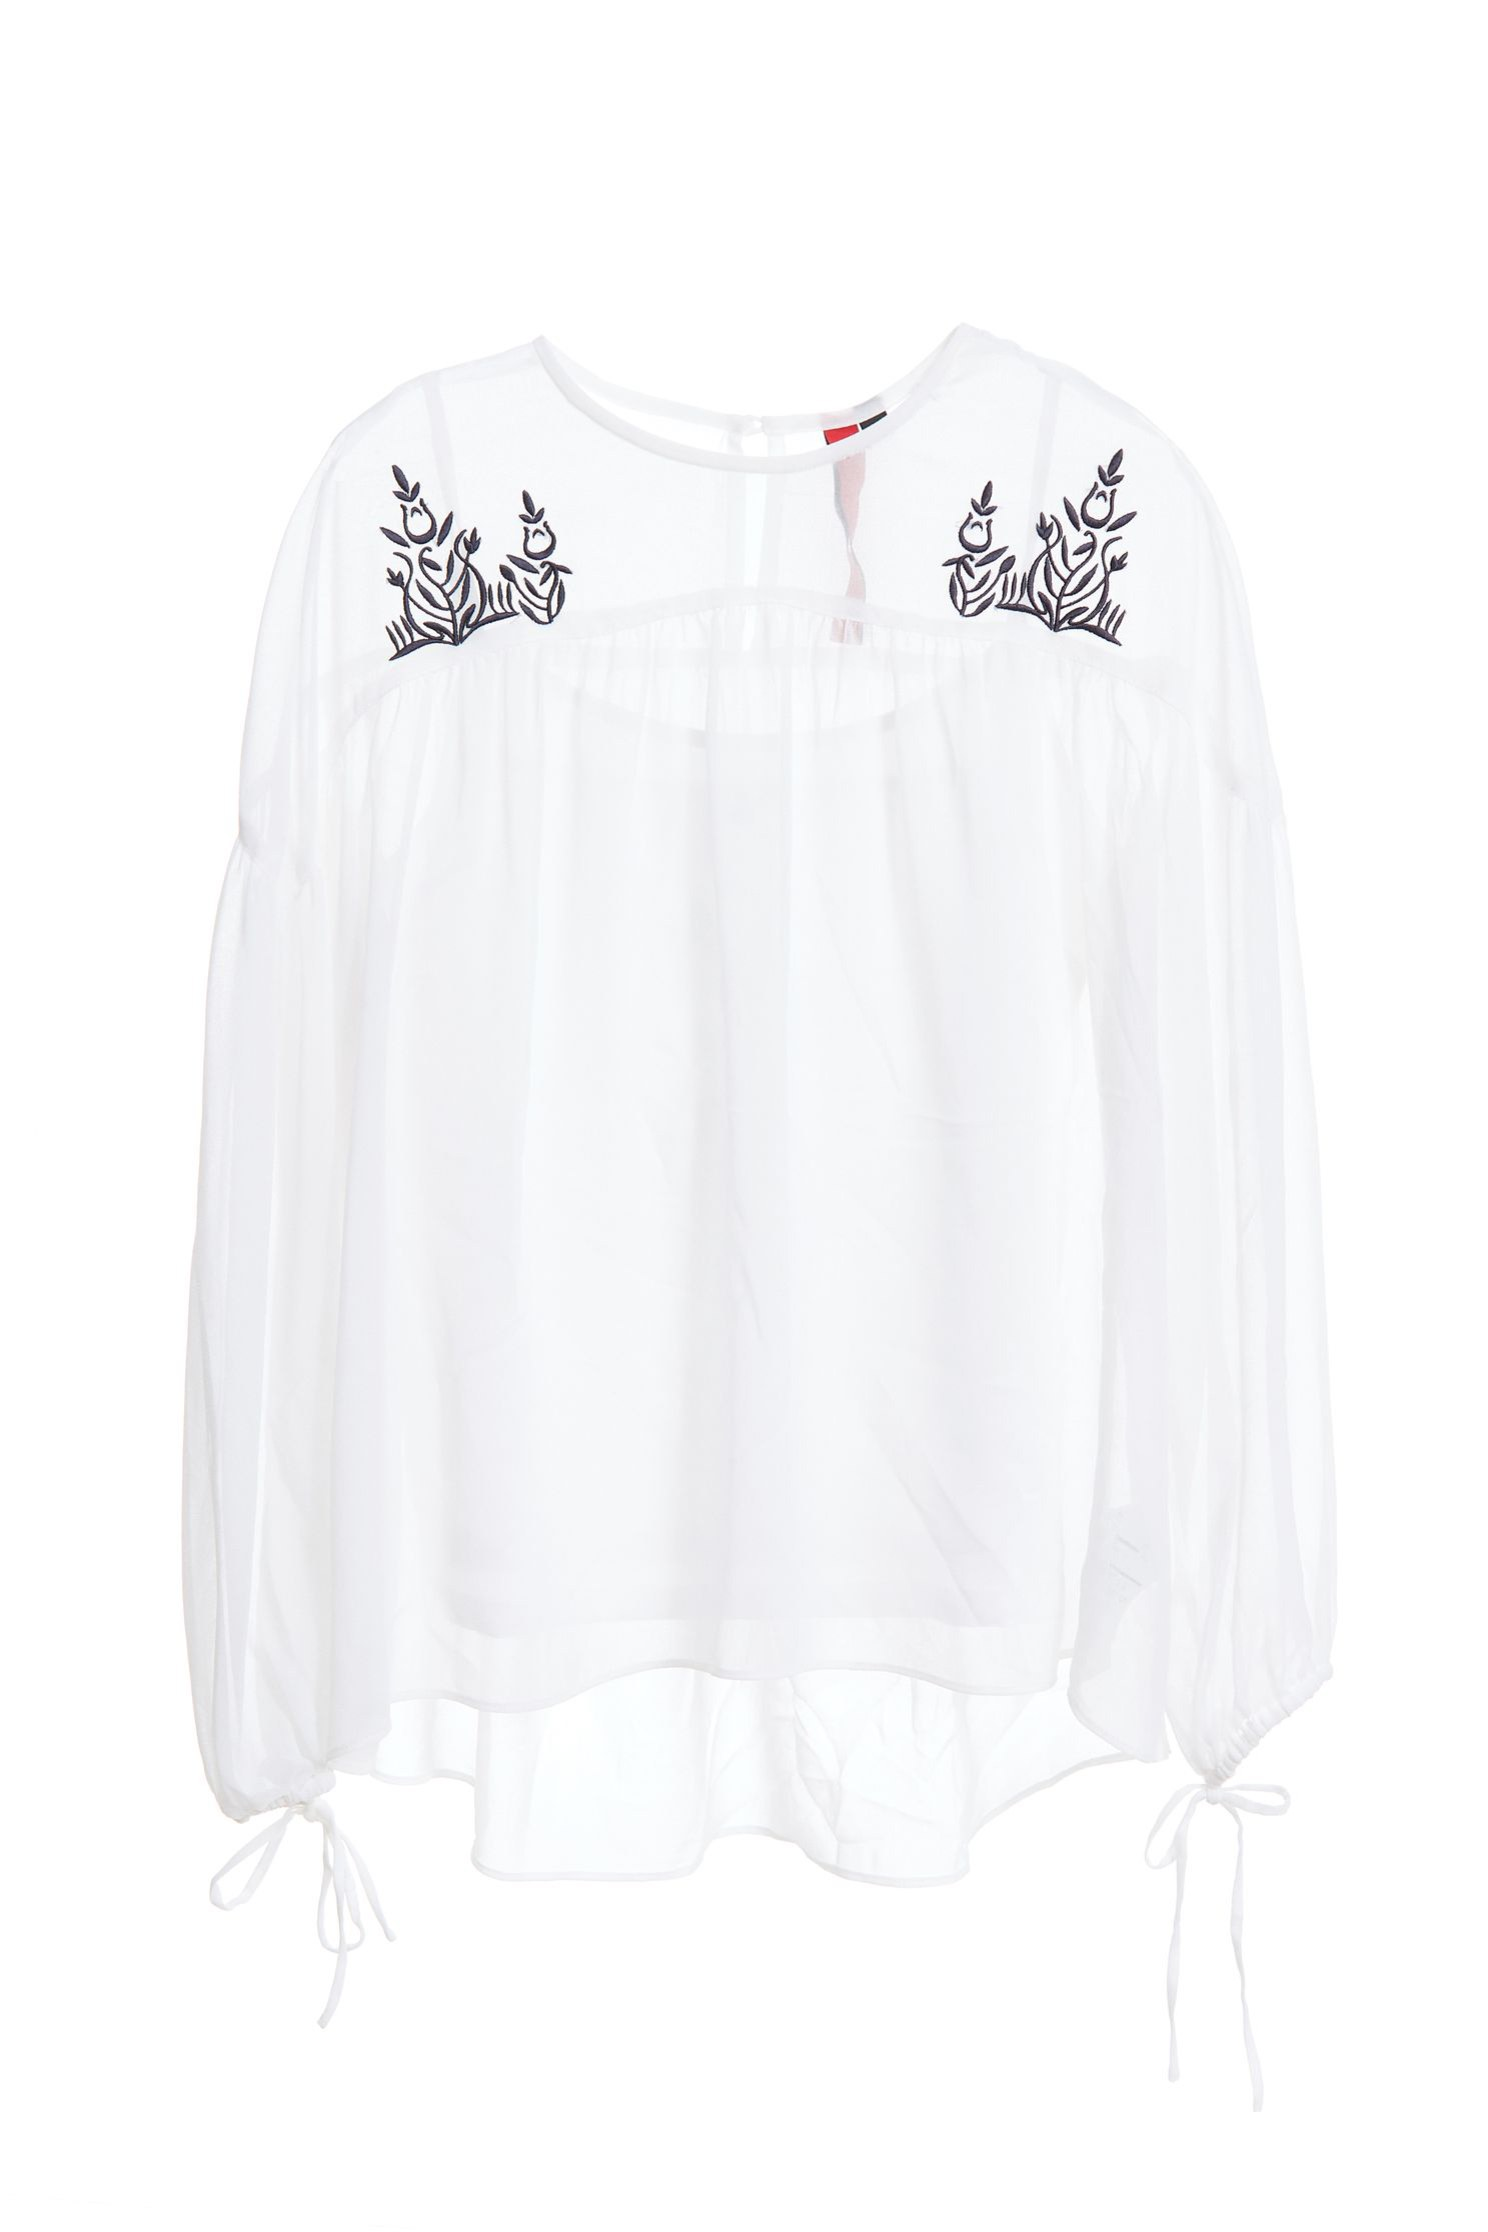 Embroidered chiffon top,offshouldertop,top,embroidery,embroideredtop,offshouldertop,whitetop,embroidered,embroideredtop,longsleevetop,chiffon,chiffontop